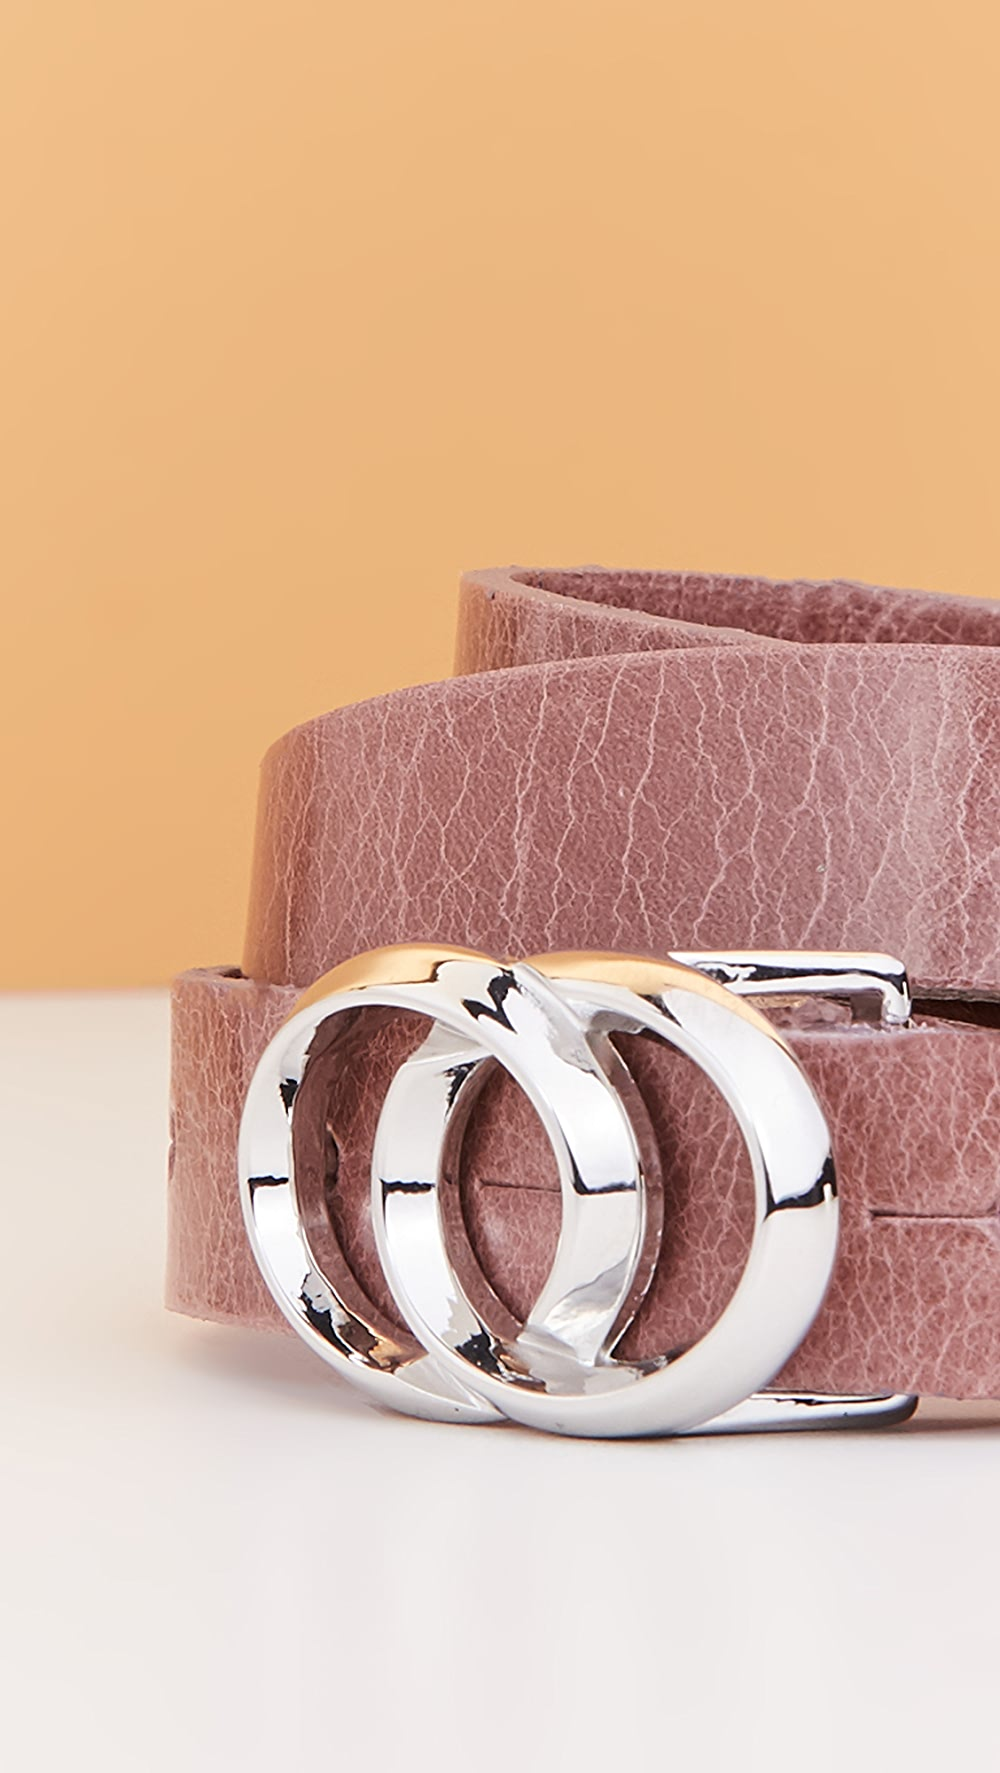 Candid B. Belt - Lia Buckle Belt Cool In Summer And Warm In Winter